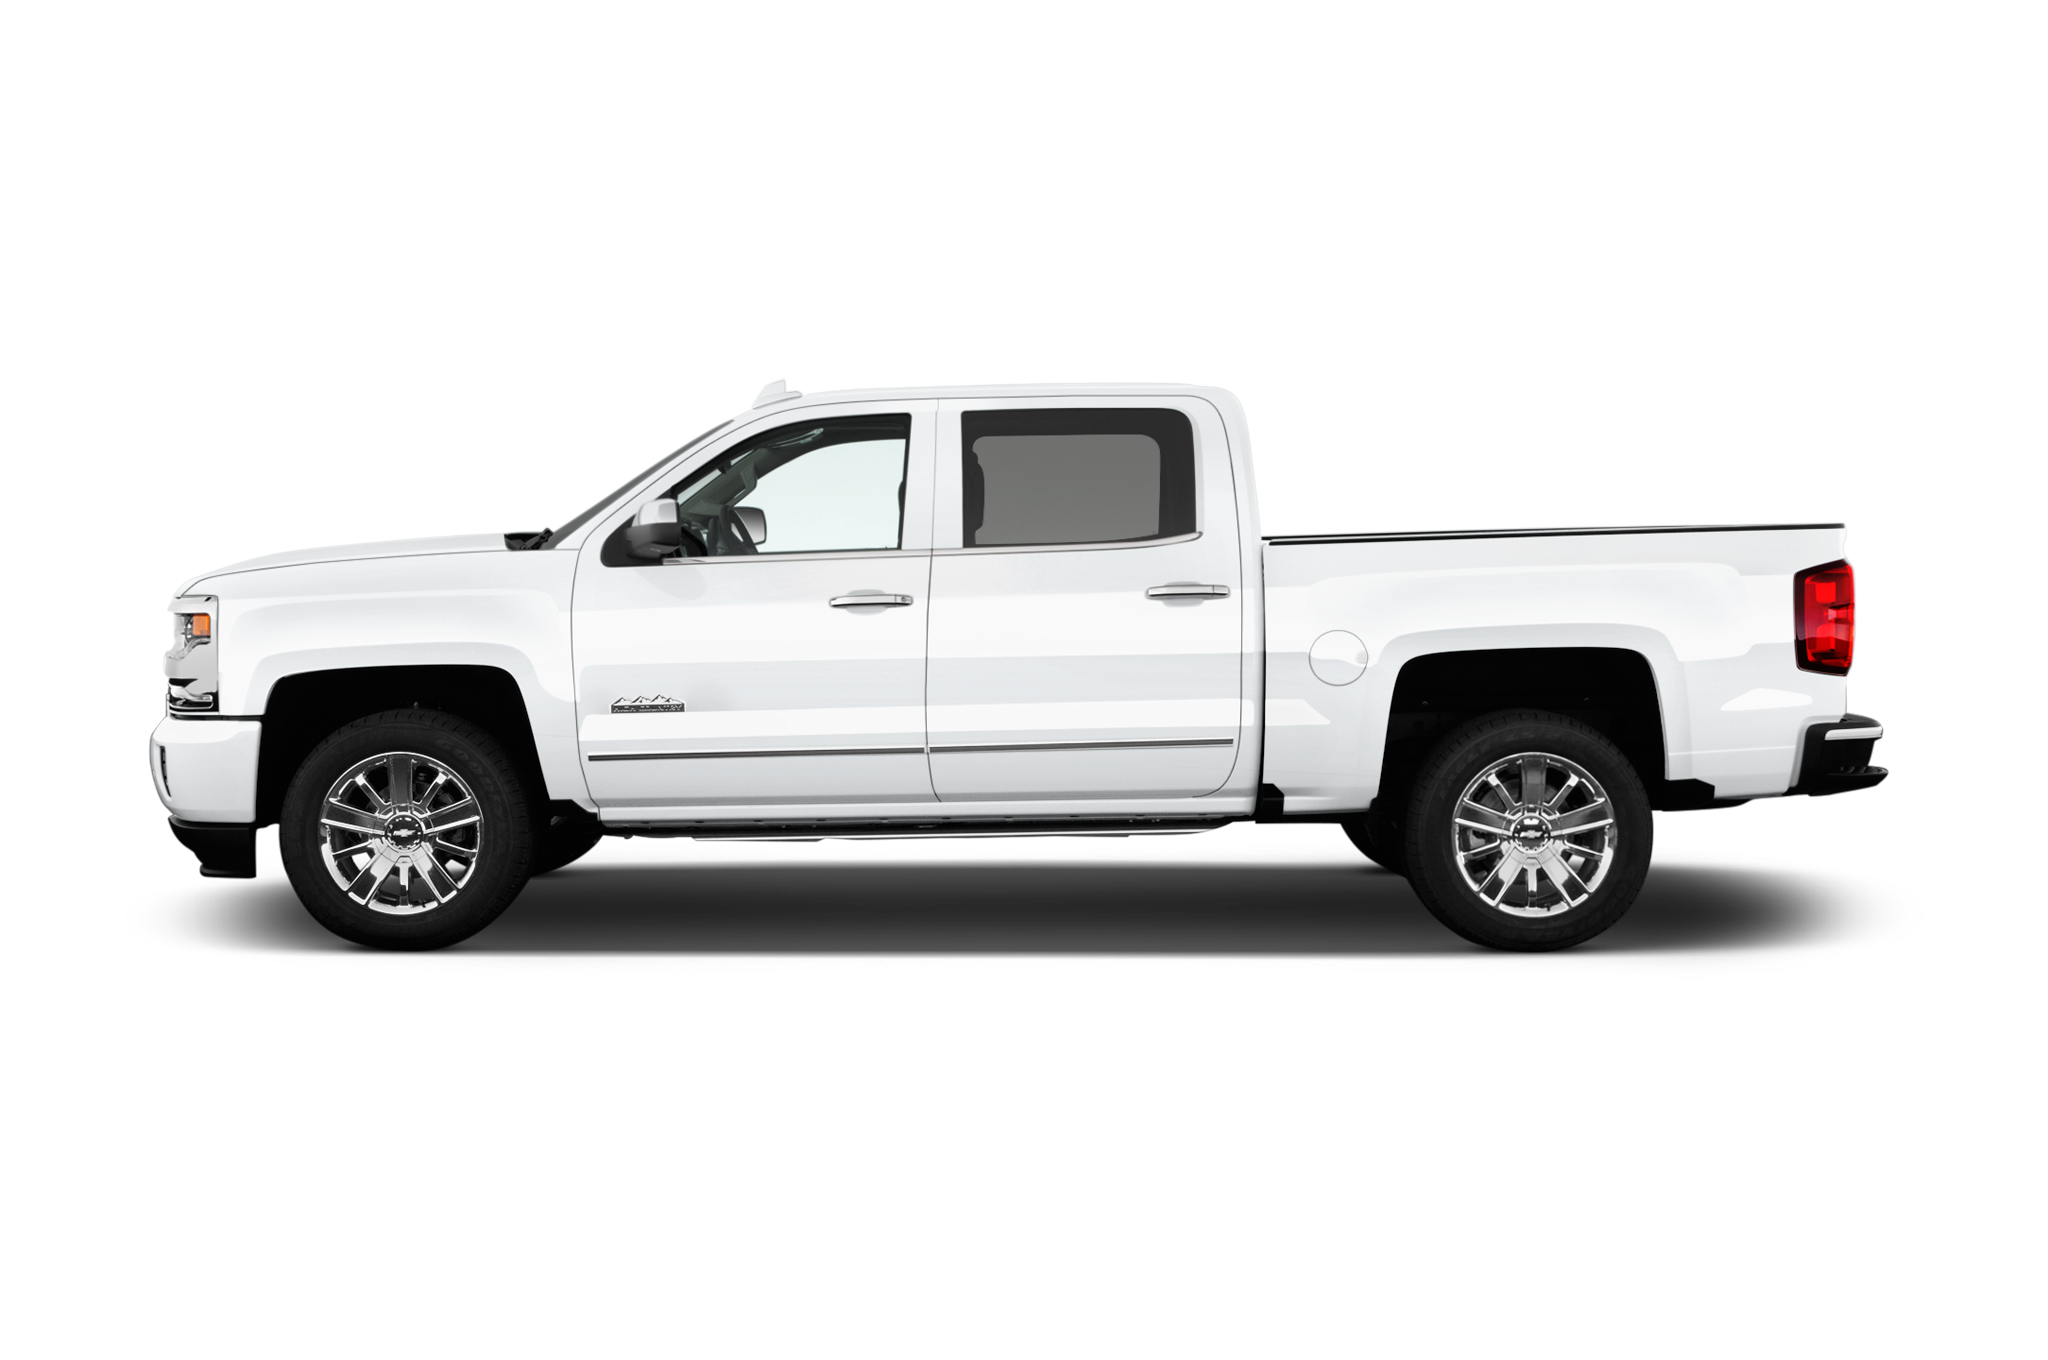 Chevrolet Silverado High Desert Package Arriving this Fall